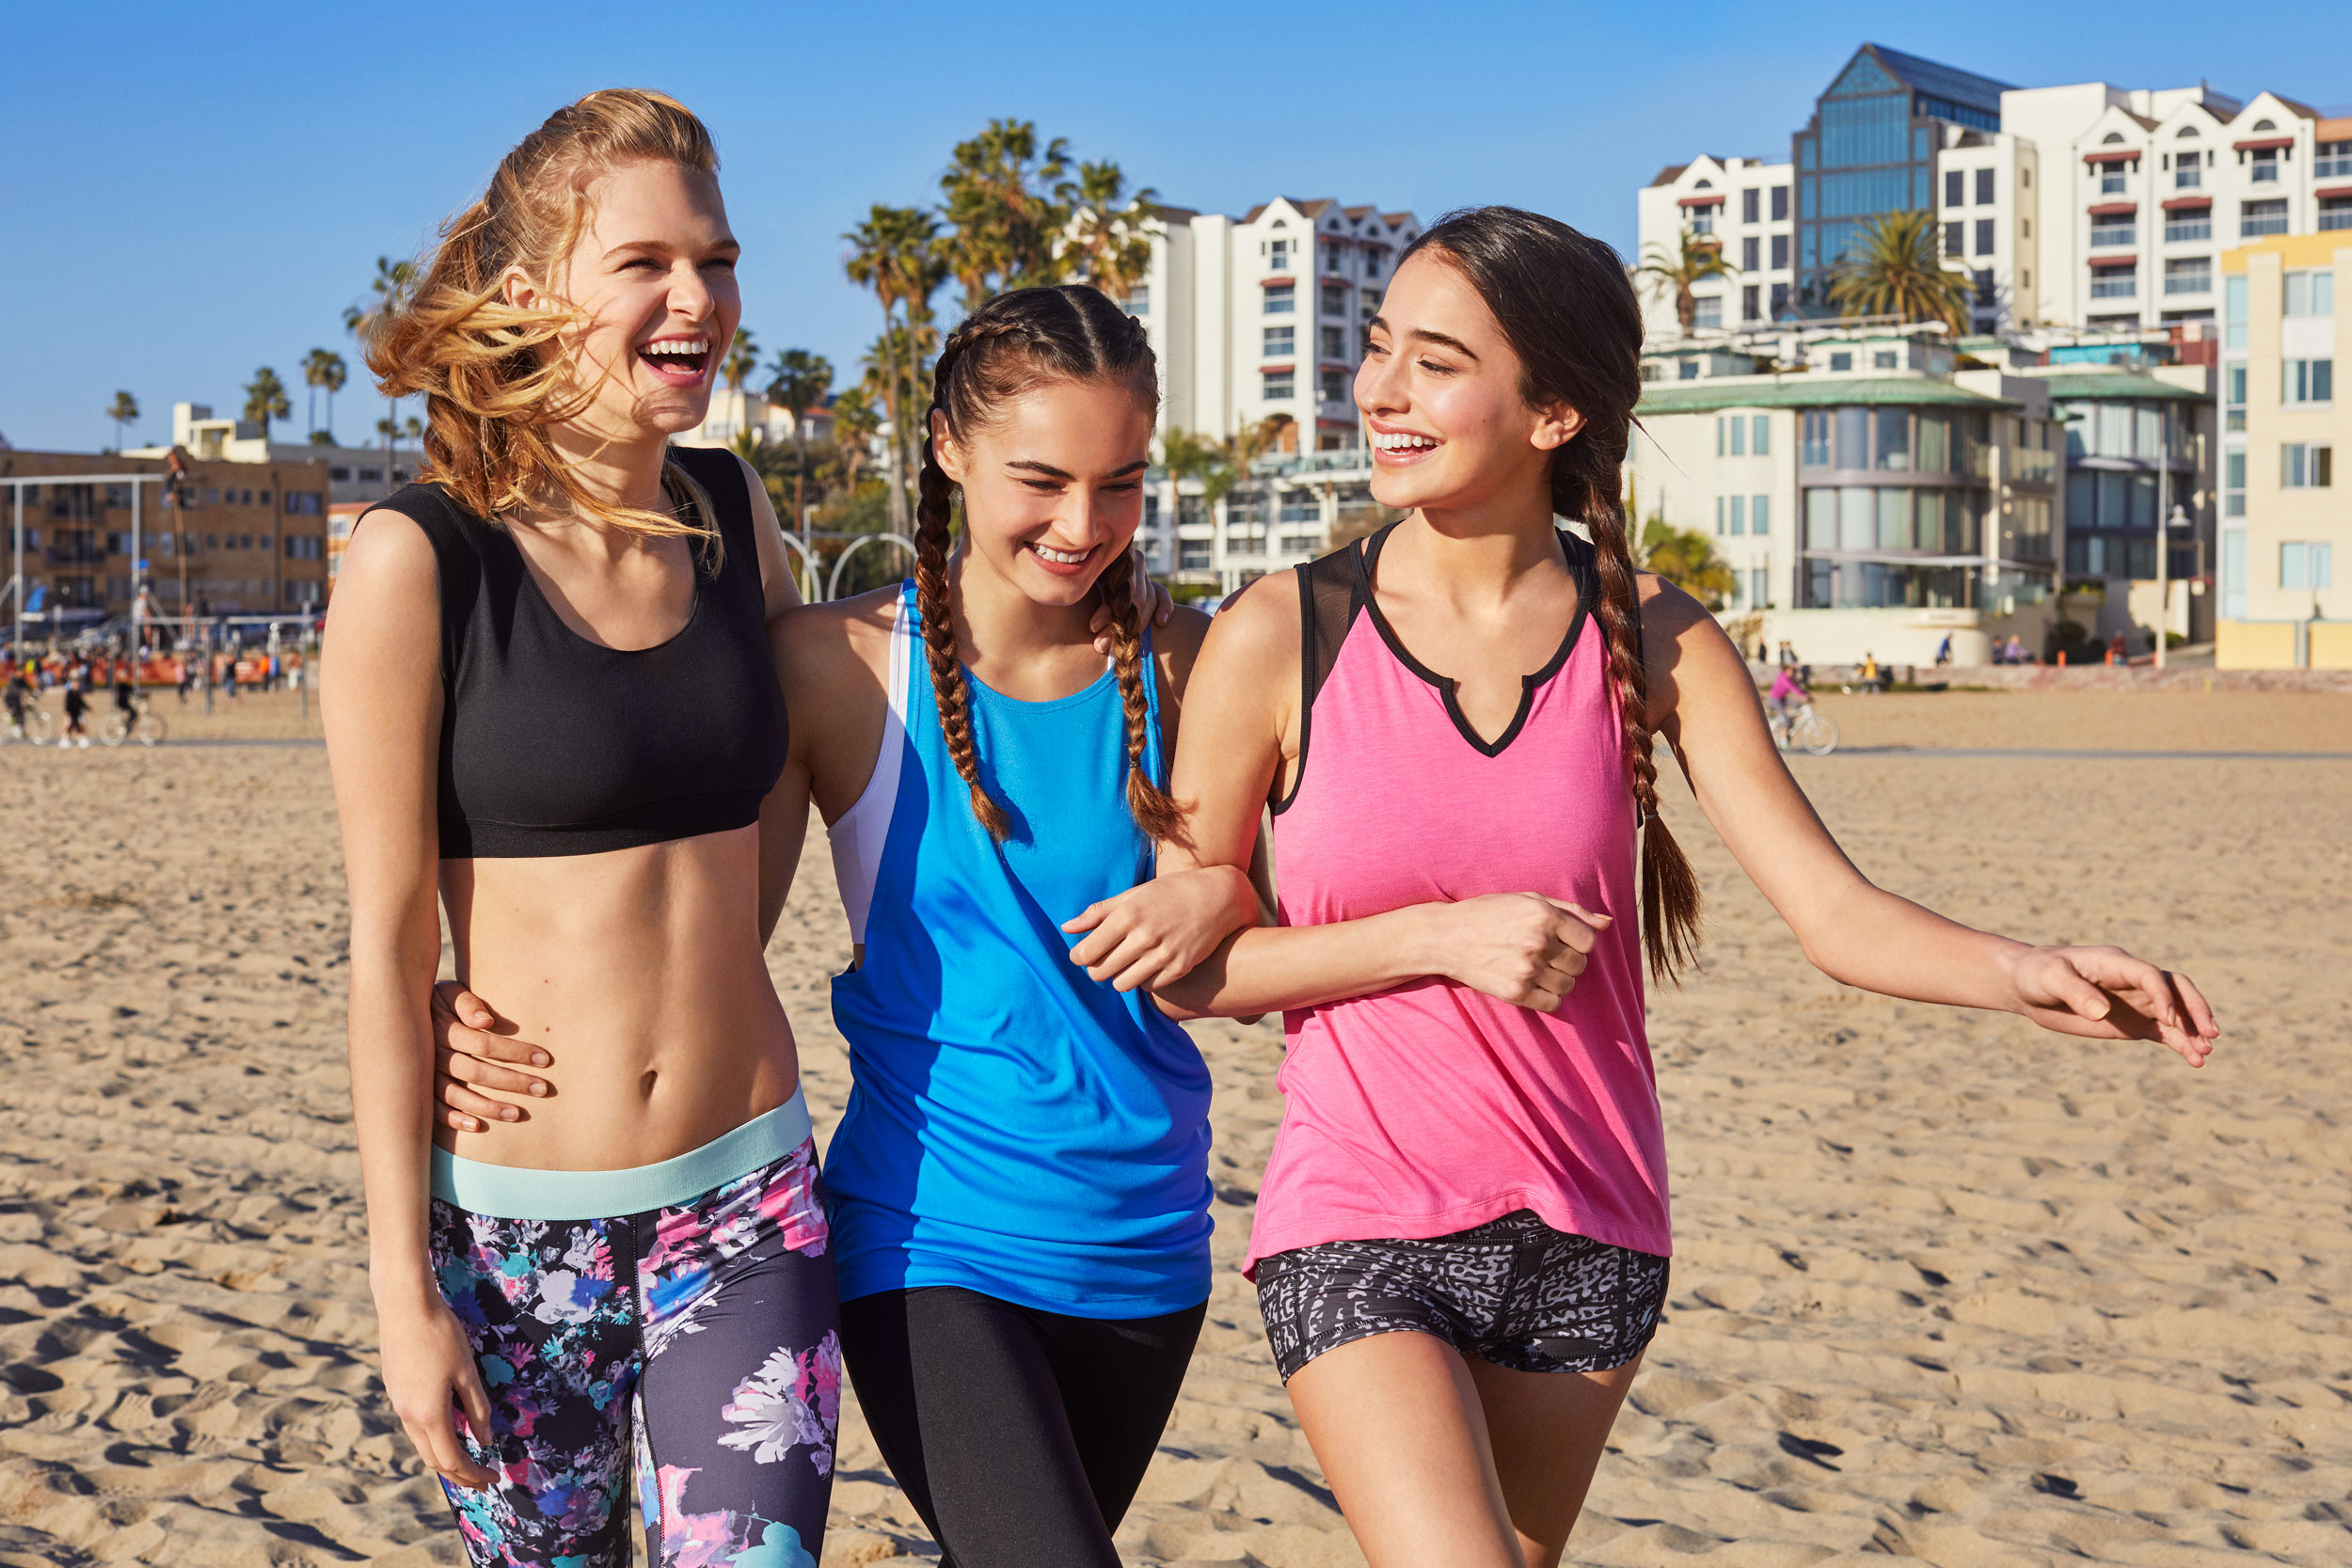 Girls in exercise clothes walking together laughing on the beach - Kim Genevieve Los Angeles Lifestyle Photographer